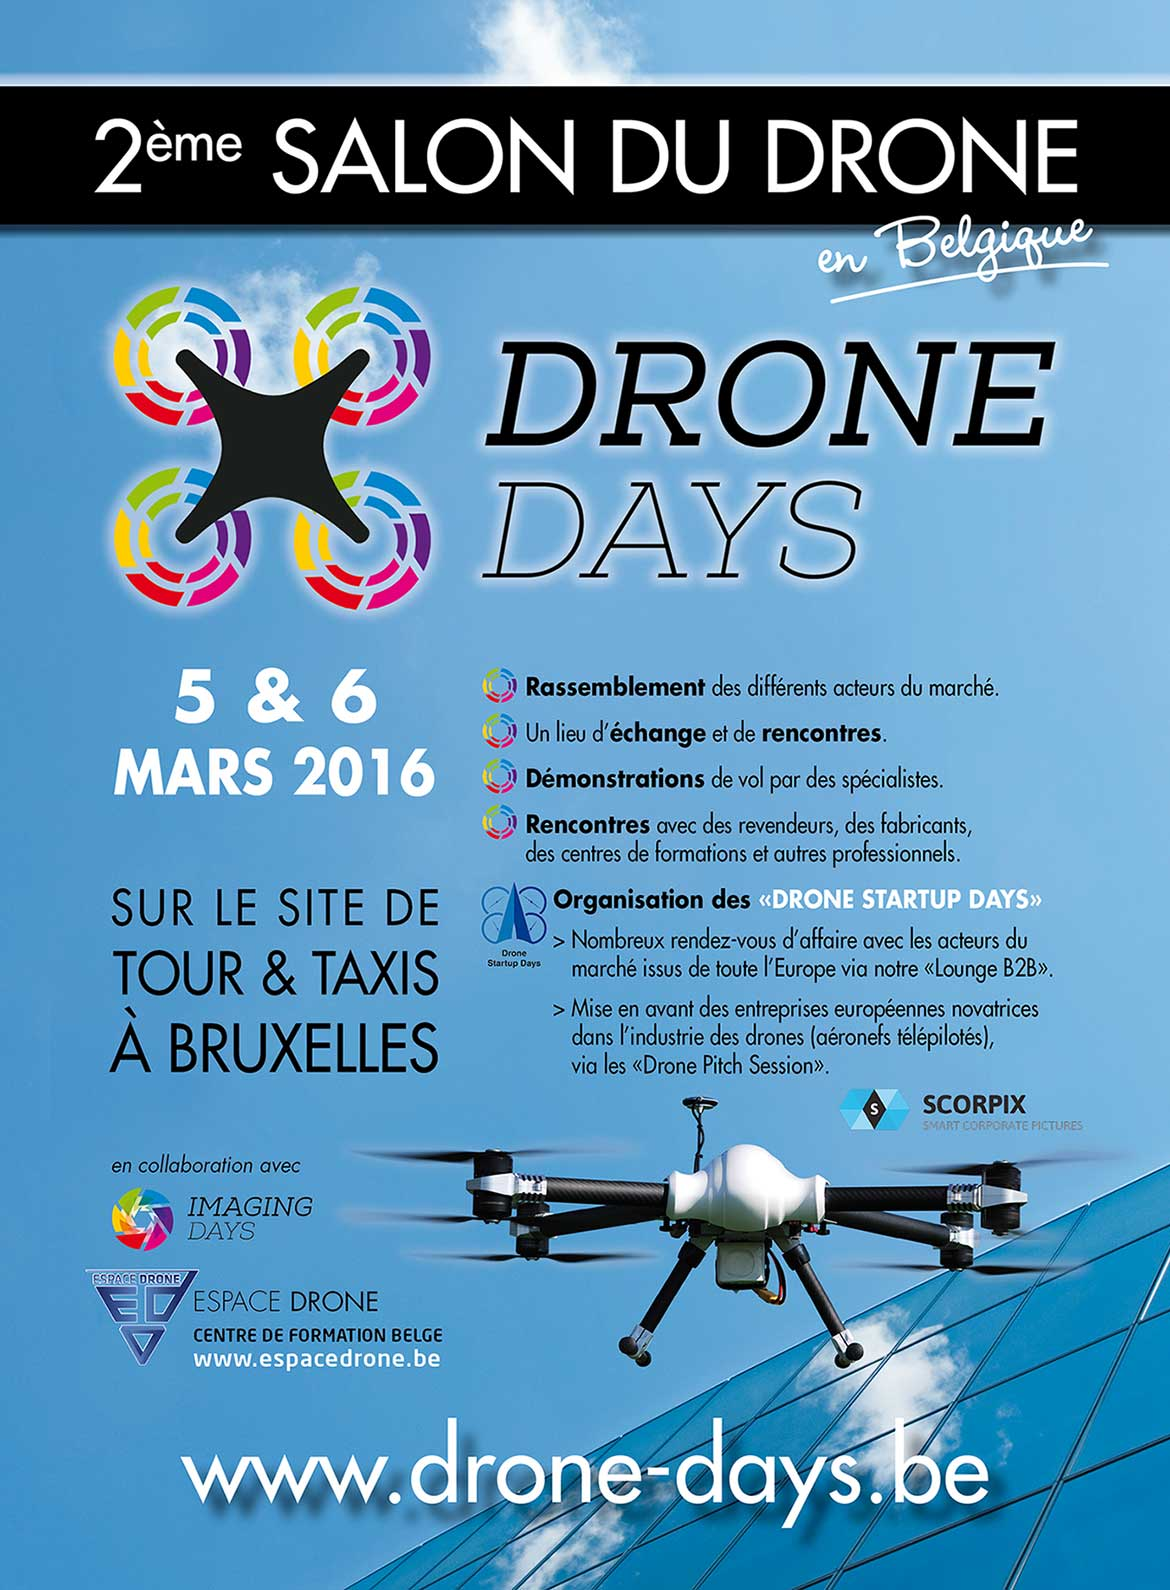 drone-days-2016-salon-du-drone-bruxelles